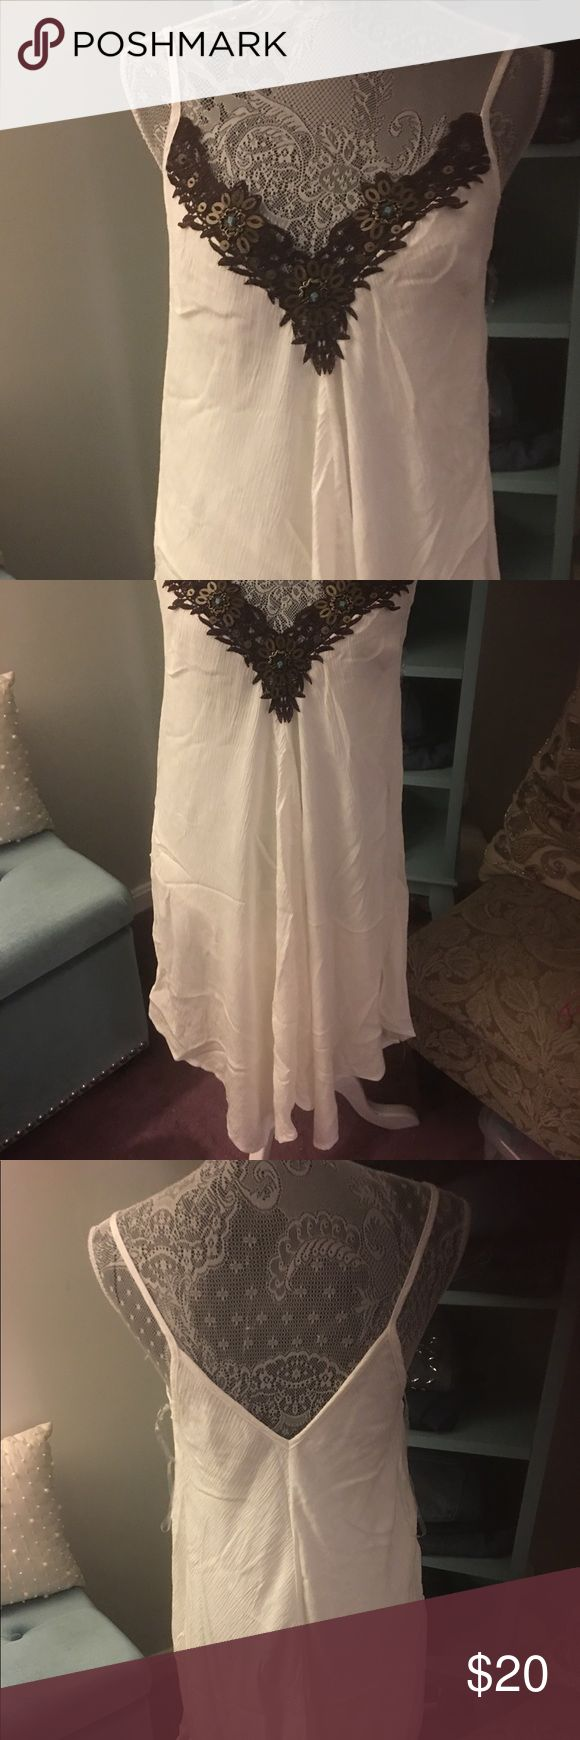 White dress/Beach cover up Nwot white v neck dress with brown crochet detail. It can also be worn as a beach cover up. Venus Dresses